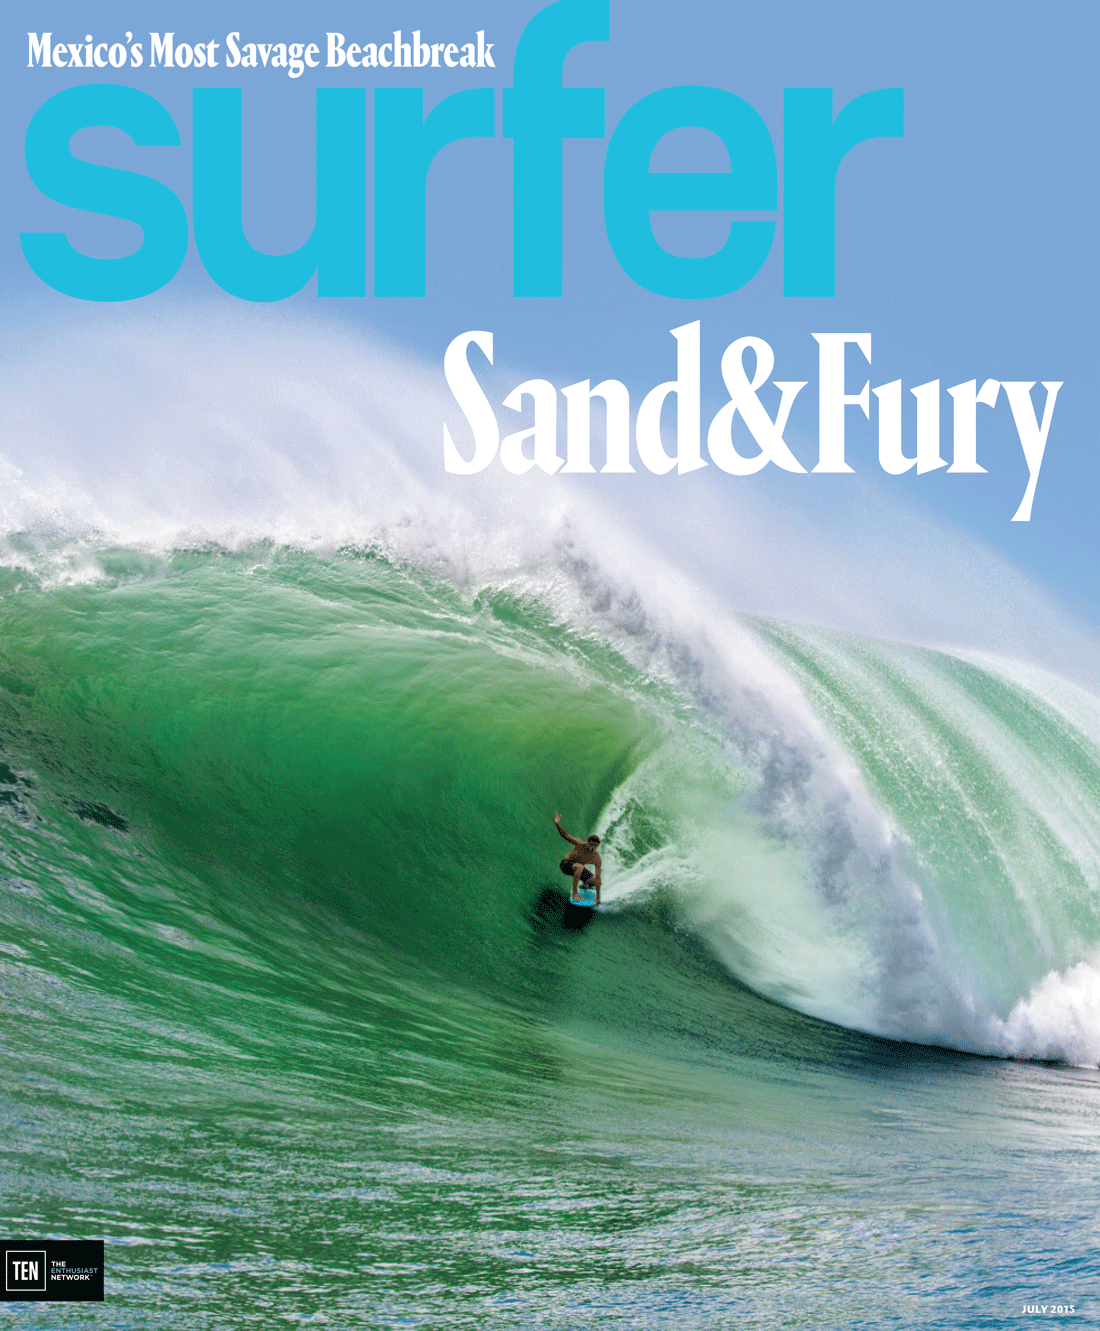 Surfer Magazine Surf News Fantasy Surfer Photos Video And Forecasting Surfer Magazine Surfing Surfer